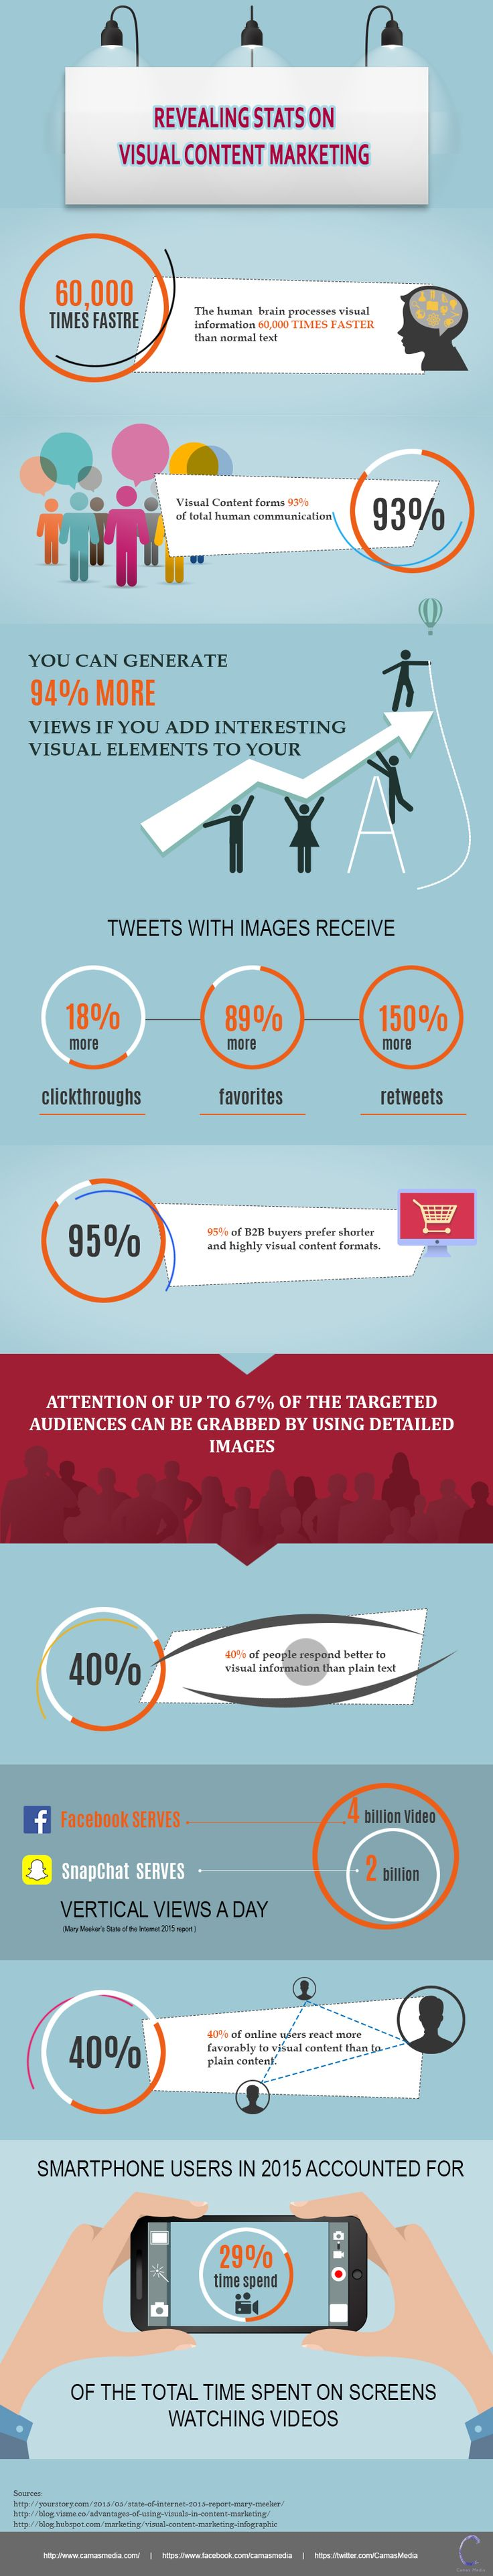 Why is Visual Content Marketing so hot? Read the statistics and science behind it